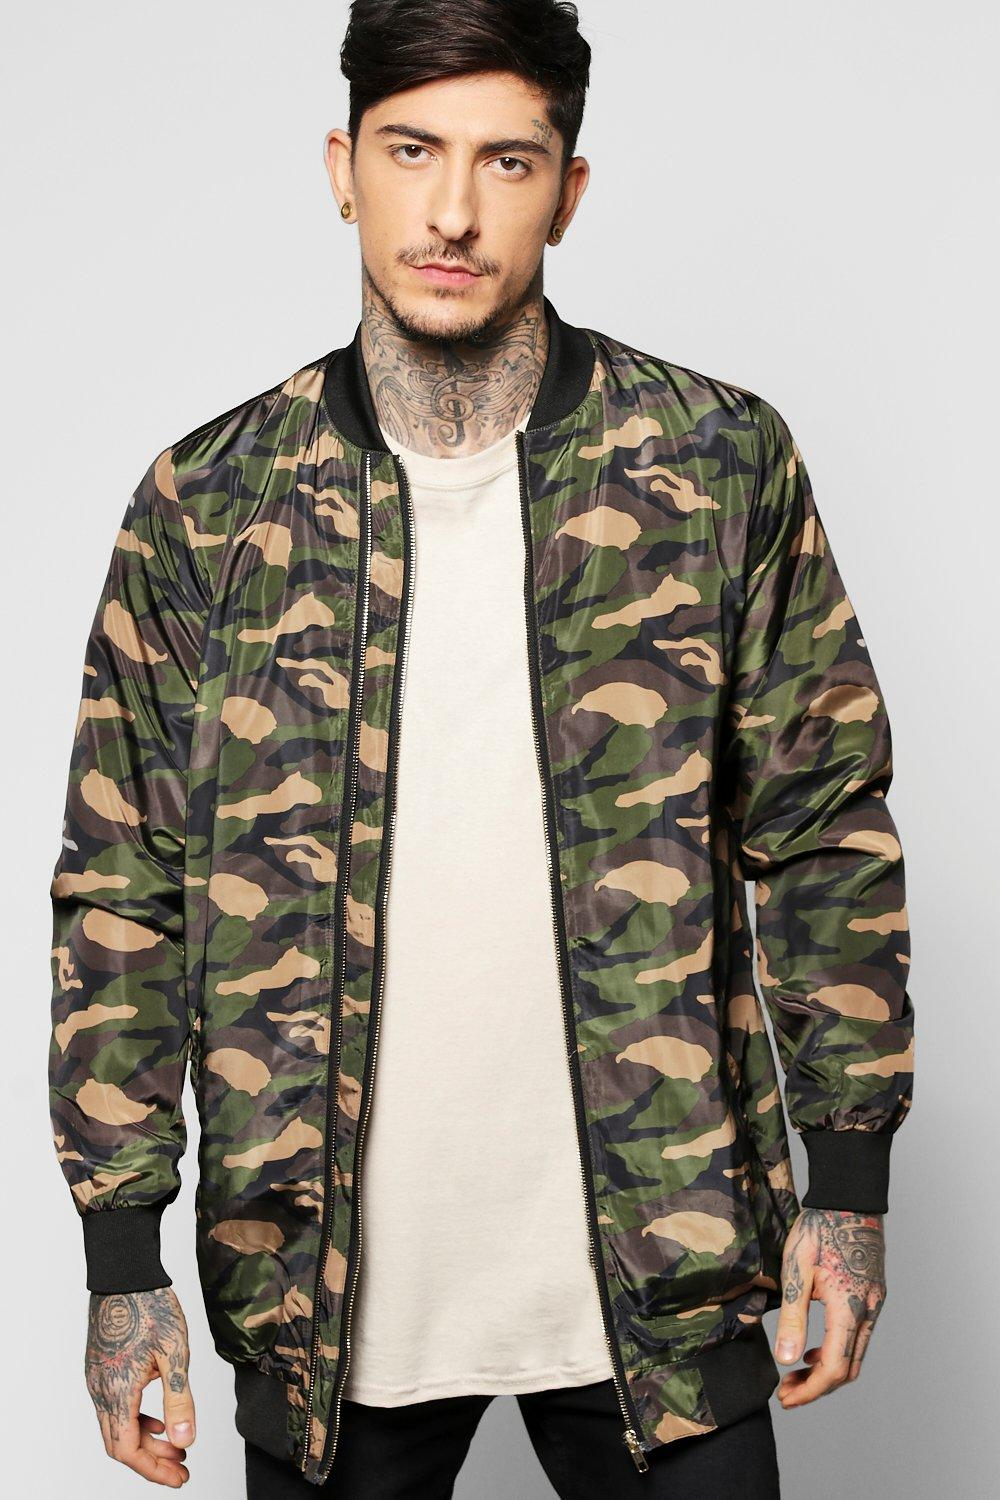 Image of All Over Camo Multi Zip Jacket - khaki